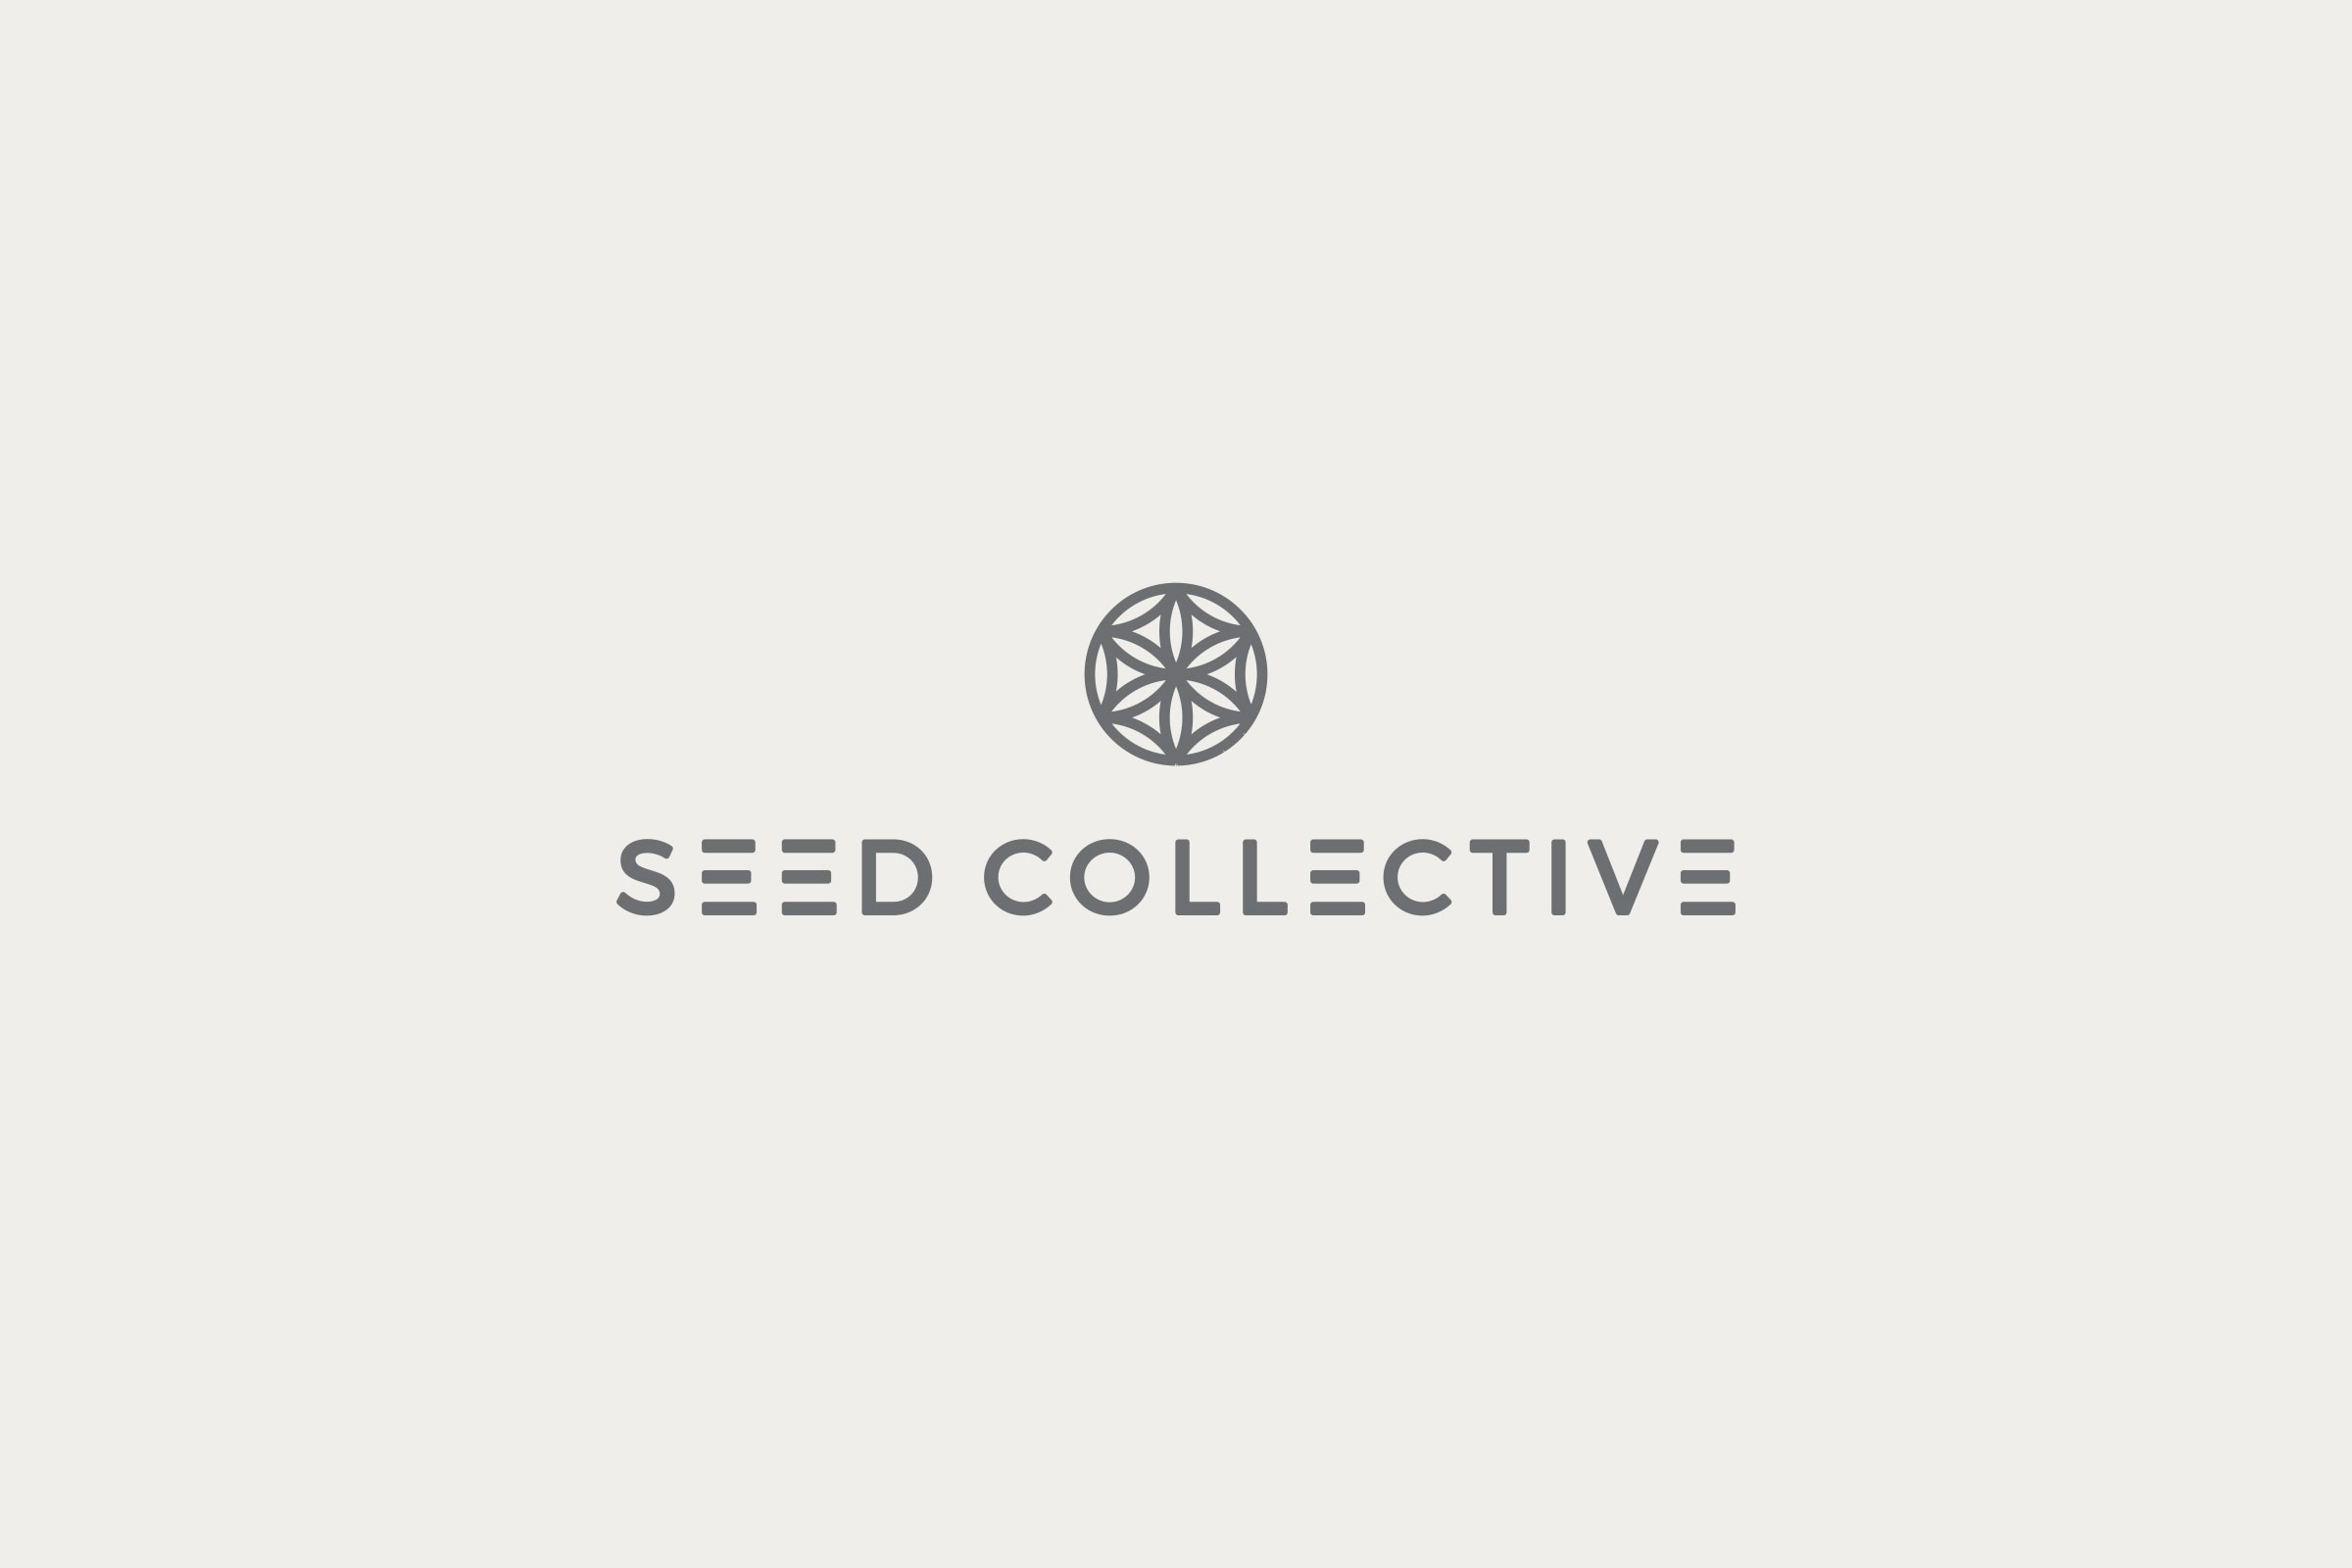 01_Seed_Collective_Logo_by_Foster.jpg